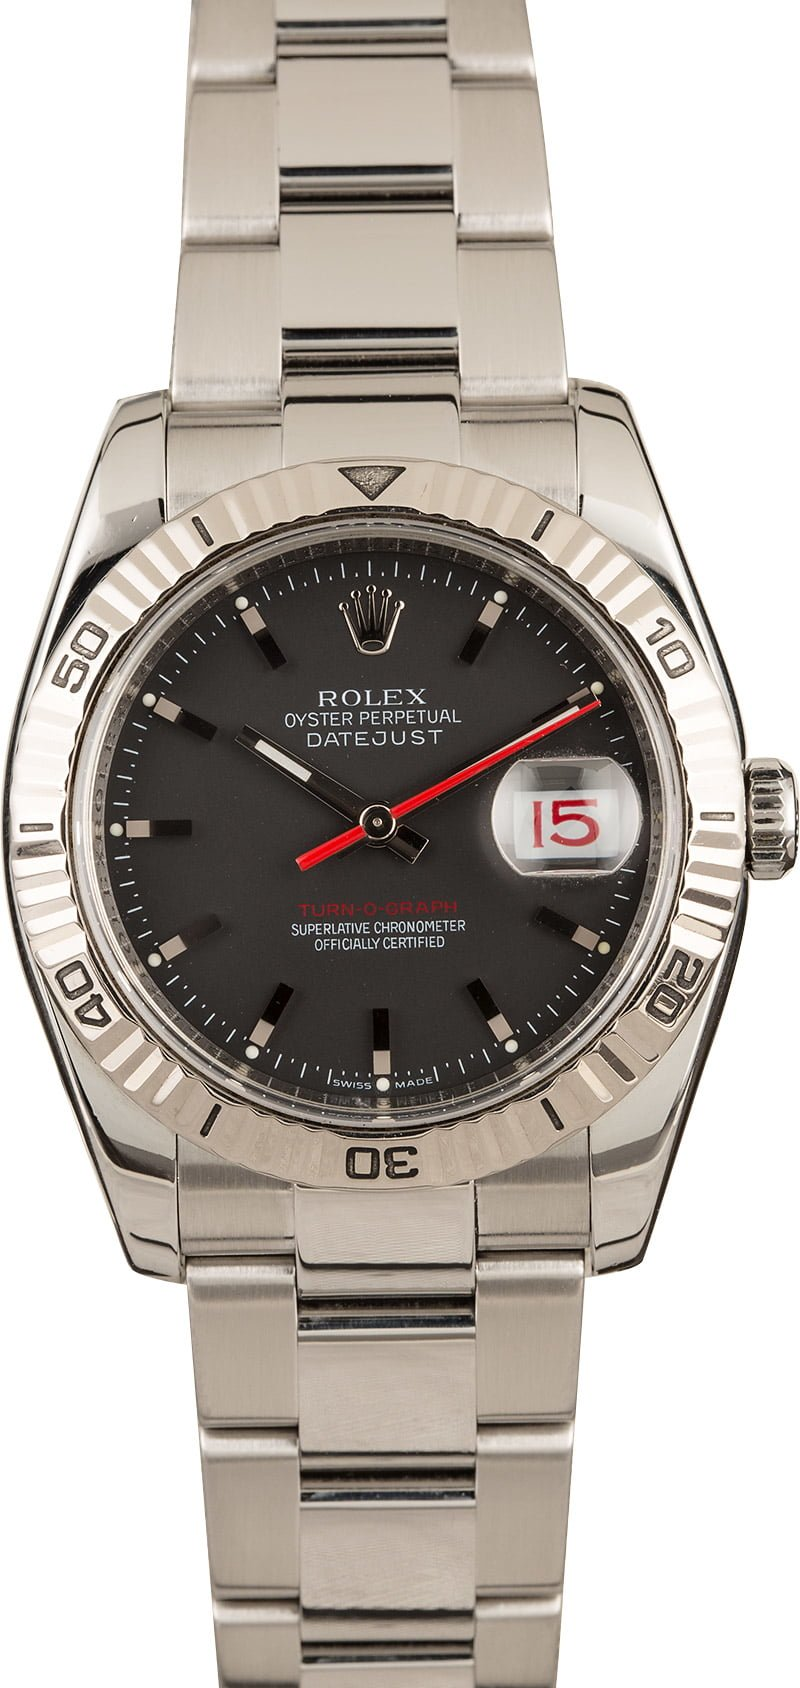 Best Overlooked Rolex Watches Datejust Turn-O-Graph 116264